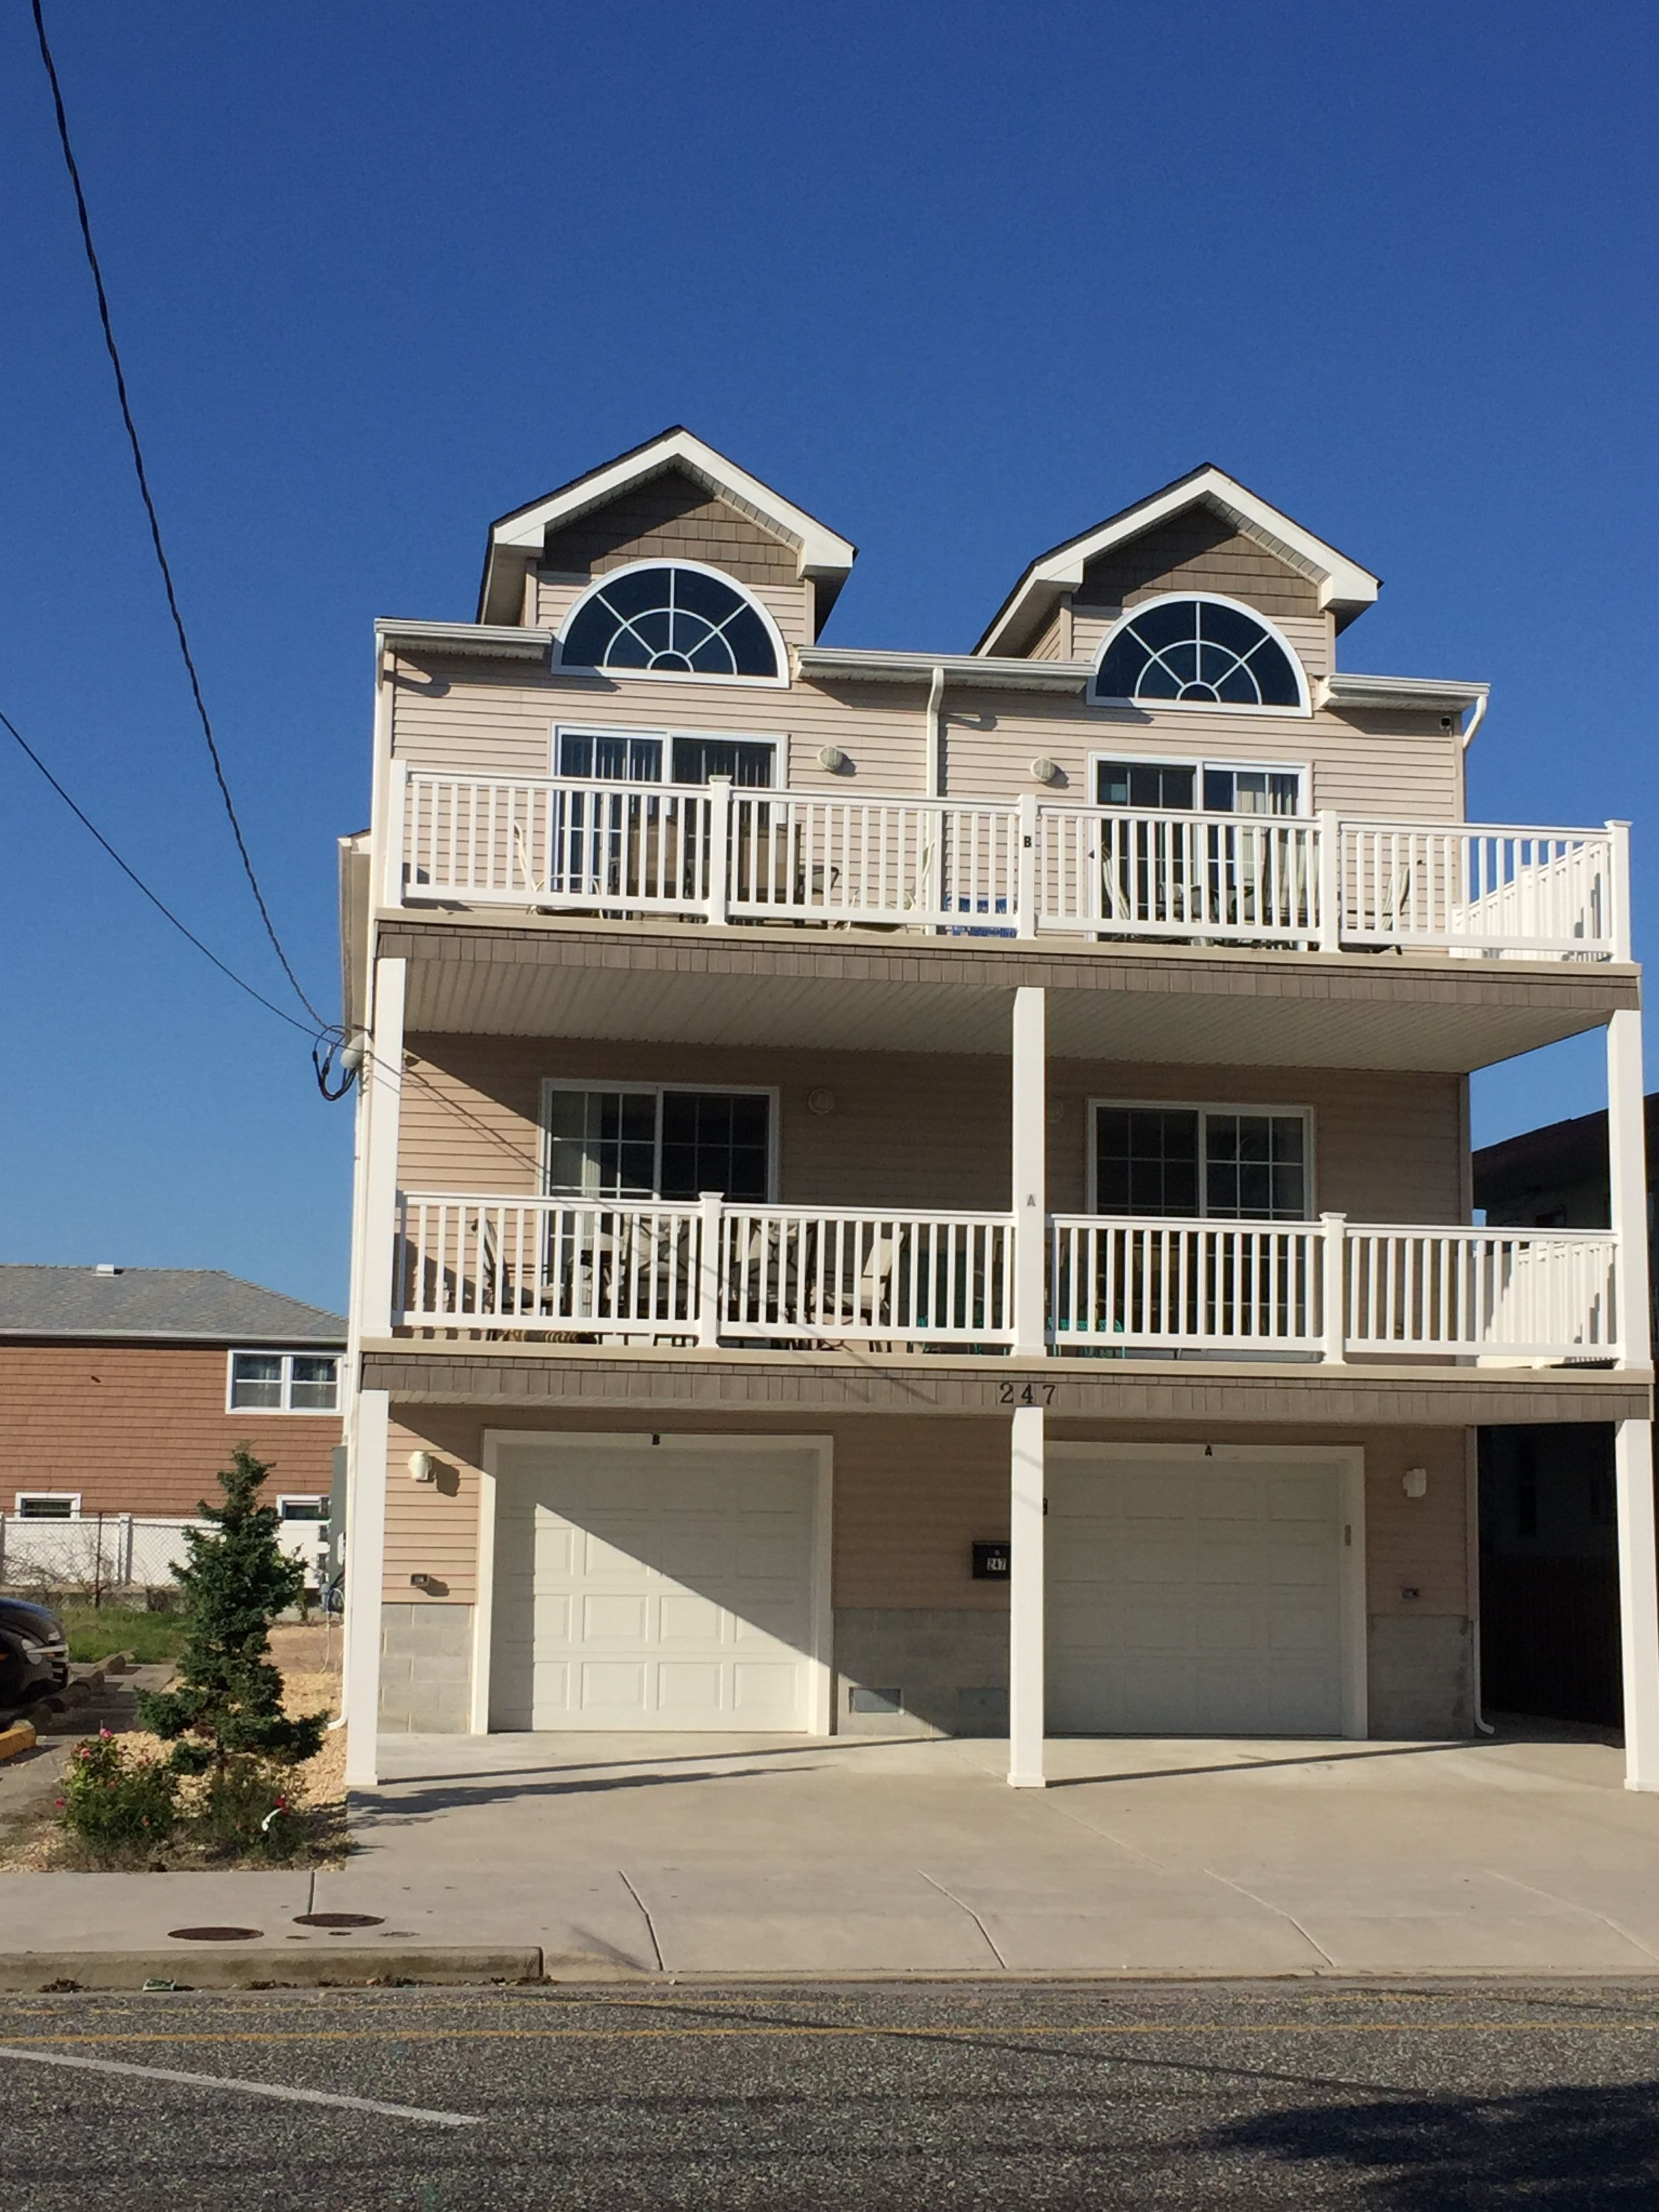 Luxury Vacation Condo Rentals Wildwood Nj Is One Of The Best Cities, To  Explore For Adventure Activity. At Night, Wildwood Comes Alive With  Grown Up Fun.